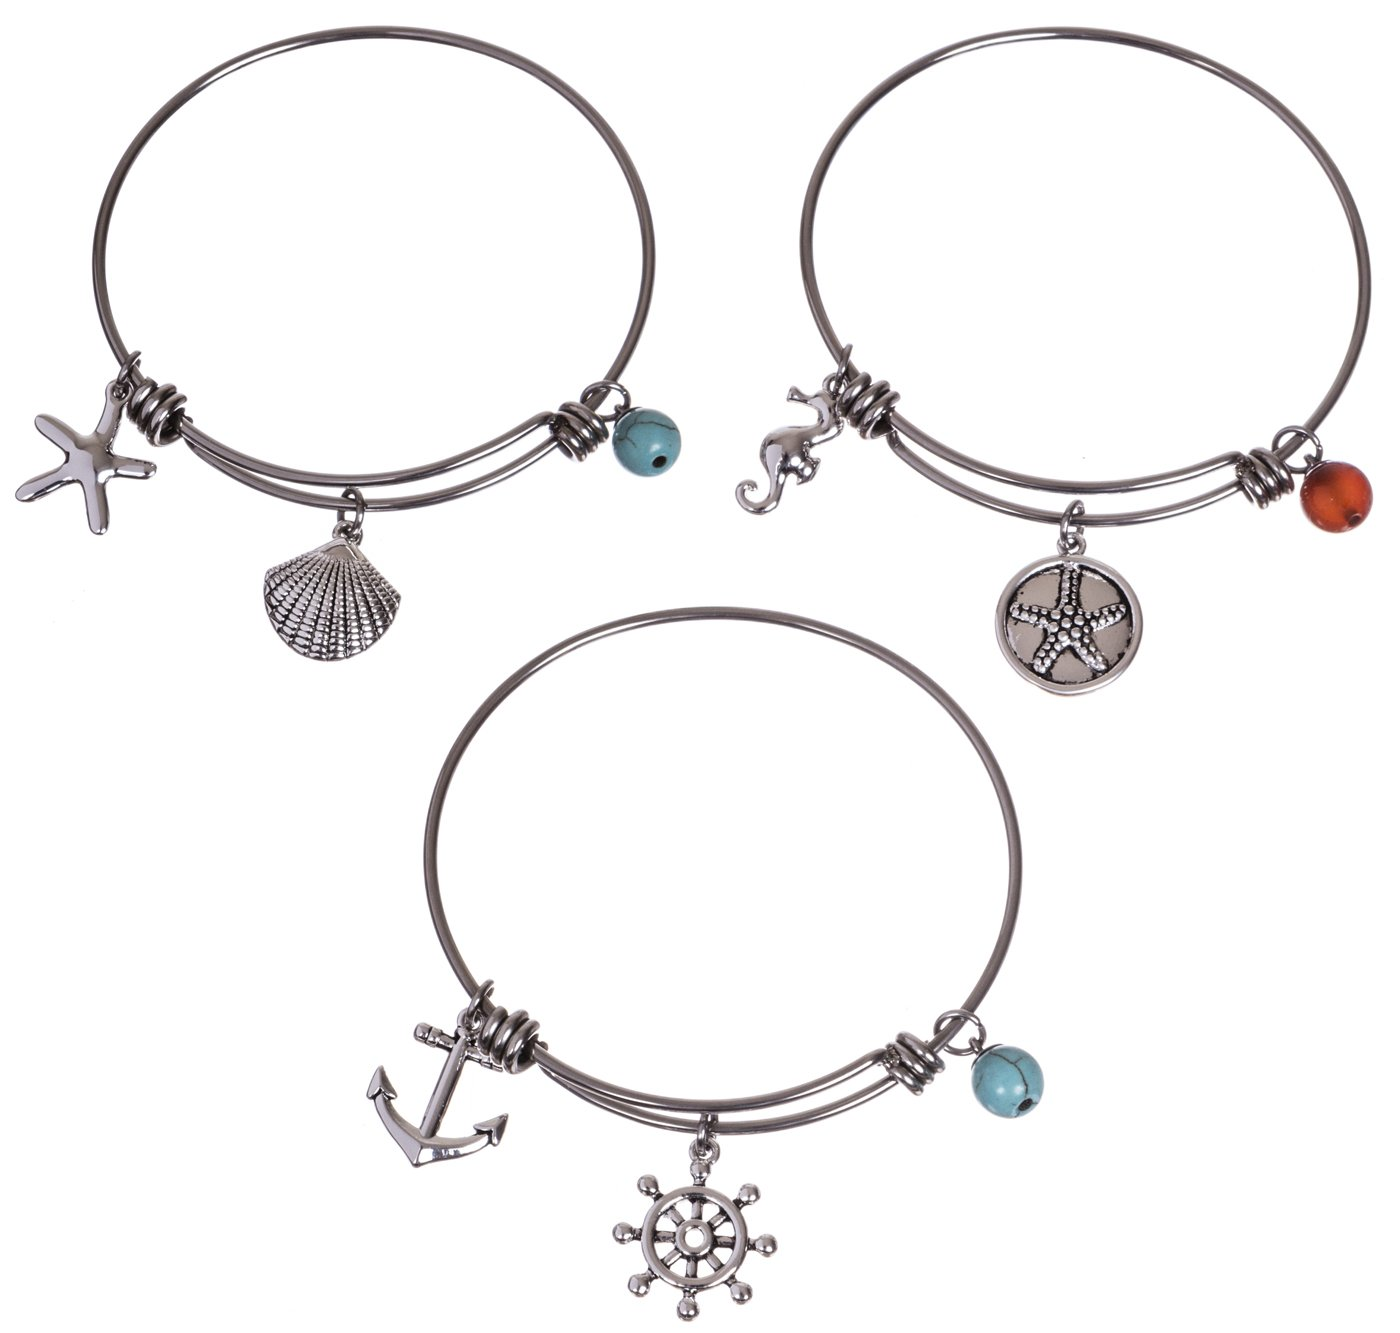 Silver Plated Stainless Steel Expandable Charm Bracelet Bangle - Make a Splash - Set of 3